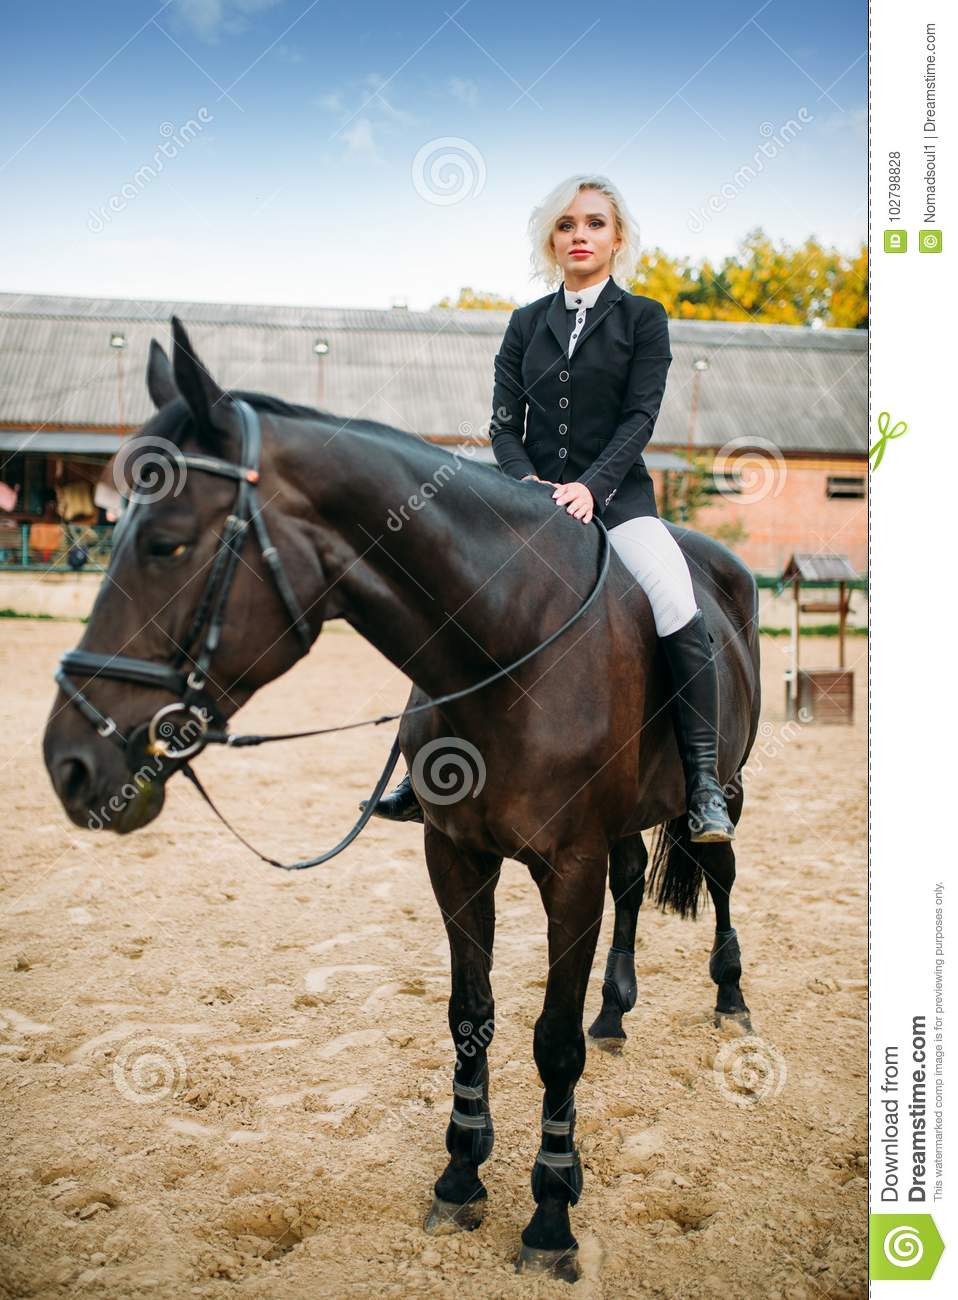 Equestrian Sport Woman Poses On Horseback Stock Photo Image Of Leisure Human 102798828